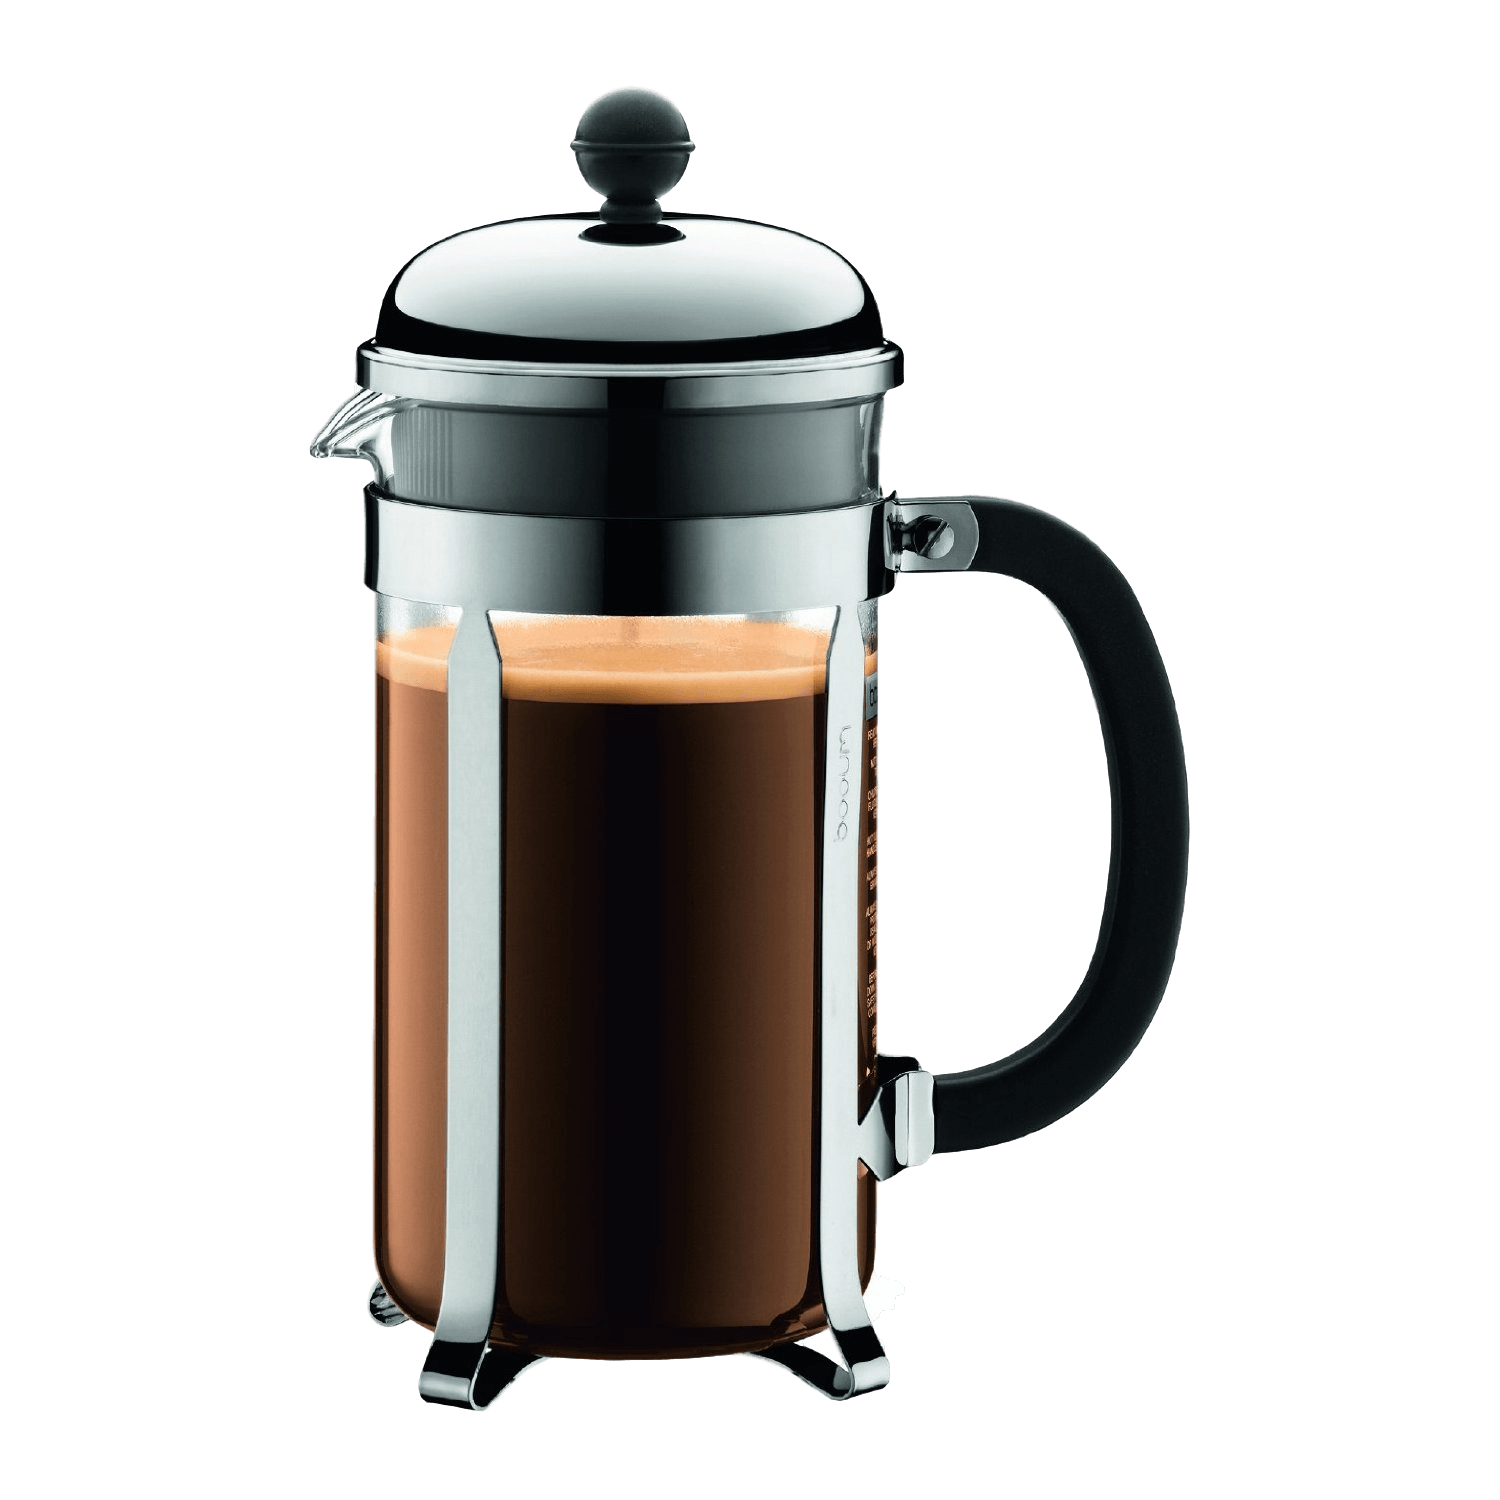 Bodum Teekanne moka pot vs press coffee maker showdown home